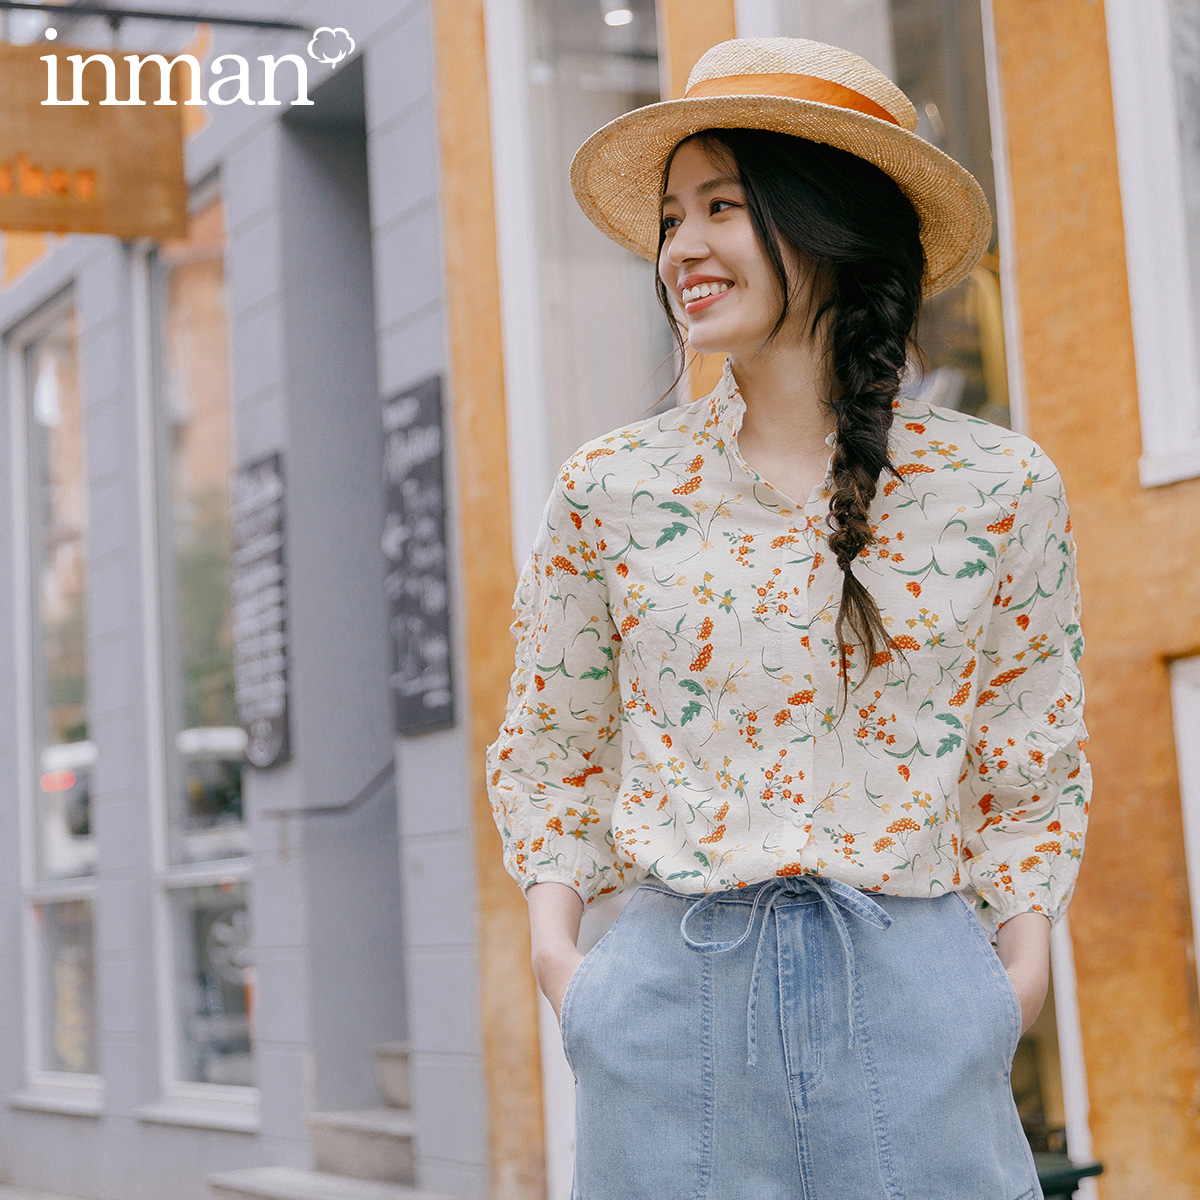 INMAN 2020 Spring New Arrival Literary Stringy Selvedge Stand Collar Retro Floral Falbala Three Quarter Sleeve Blouse